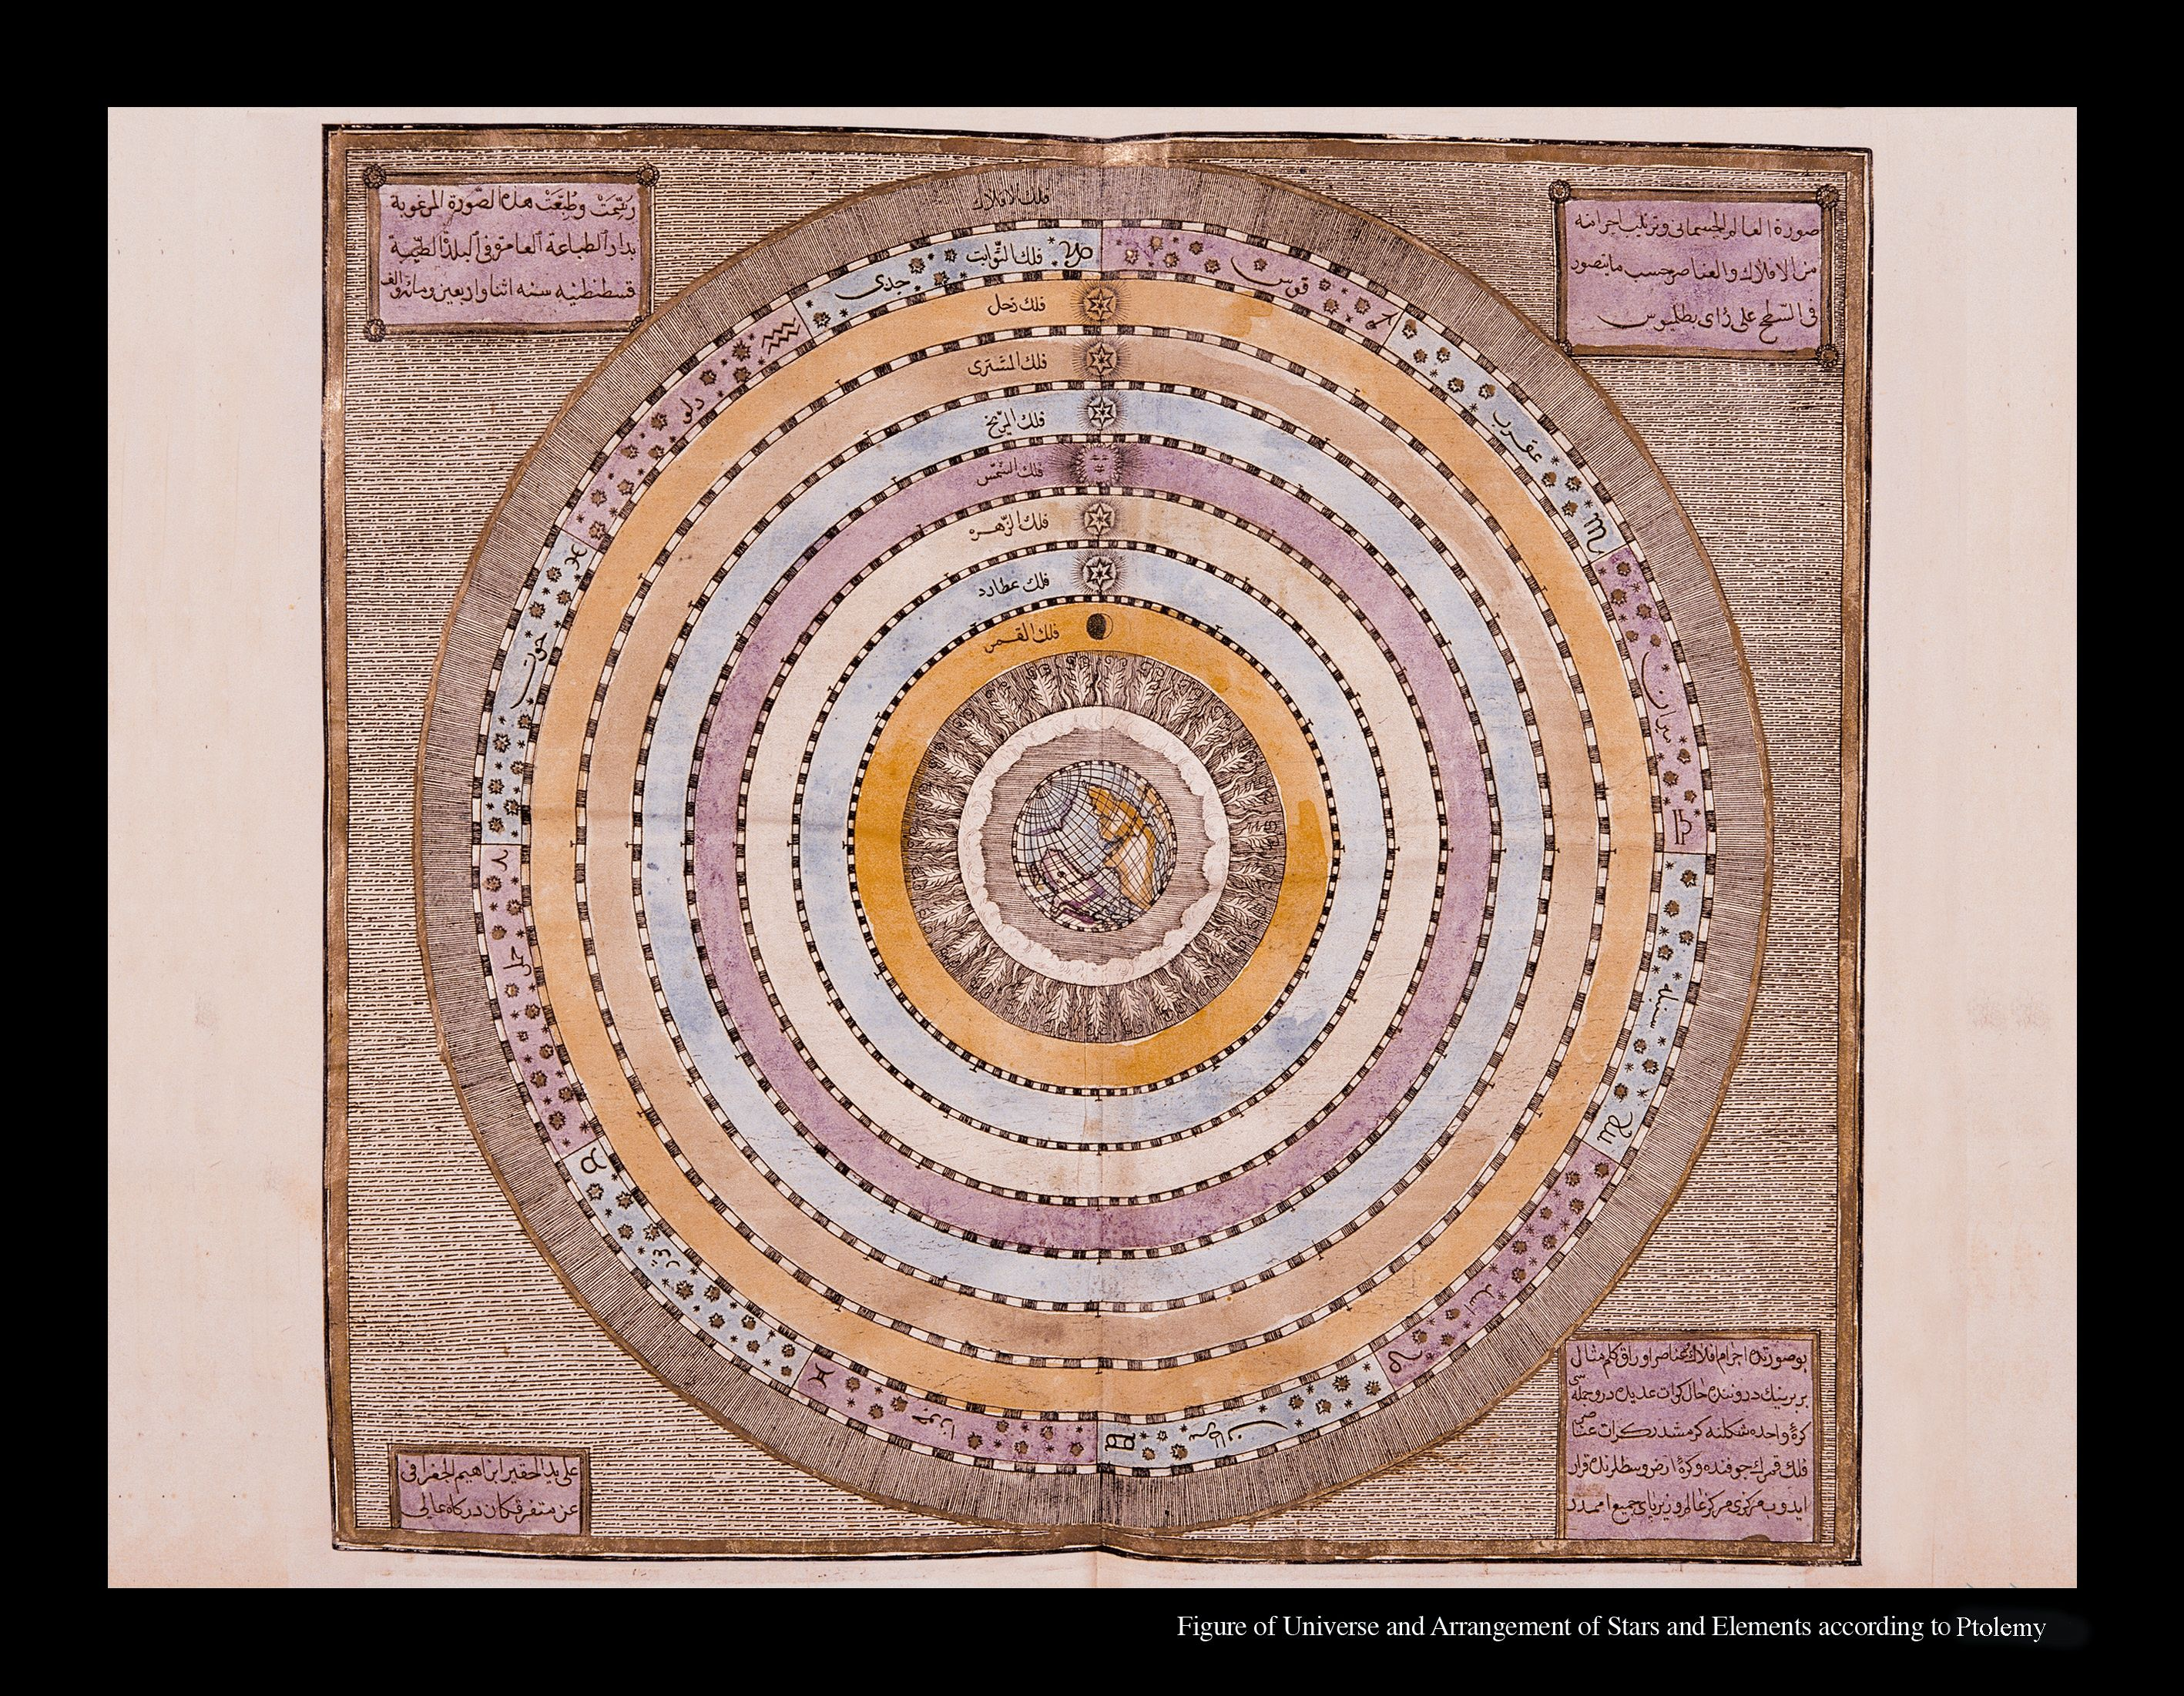 Another Ptolemaic Map Of The Universe This One In Arabic According Inkstarcyclonetattoomachinediagramjpg To Sun And Stars Orbit Earth